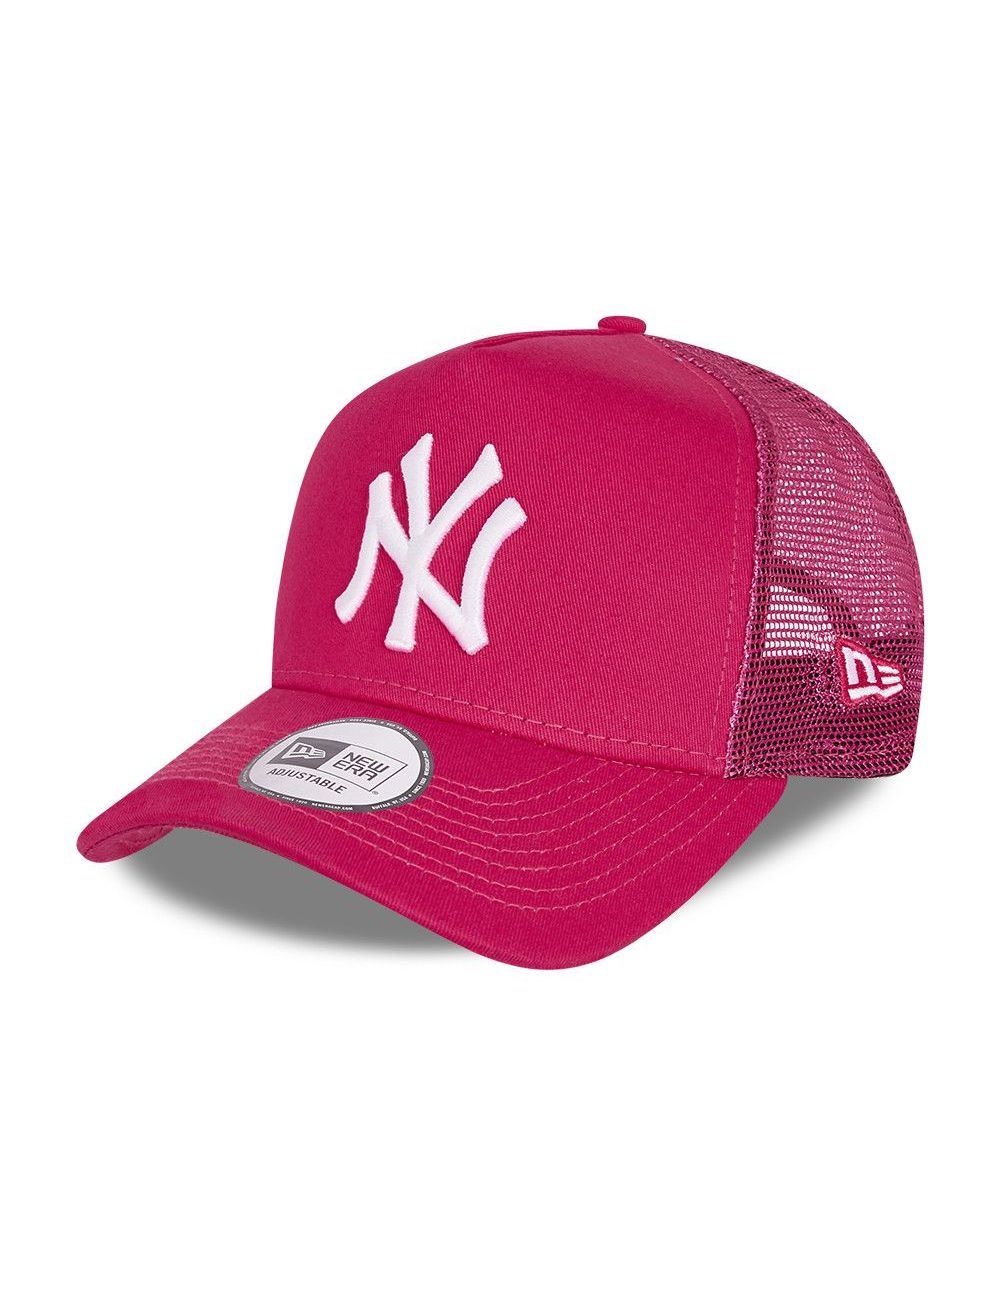 Casquette enfant/youth Trucker NY Yankees